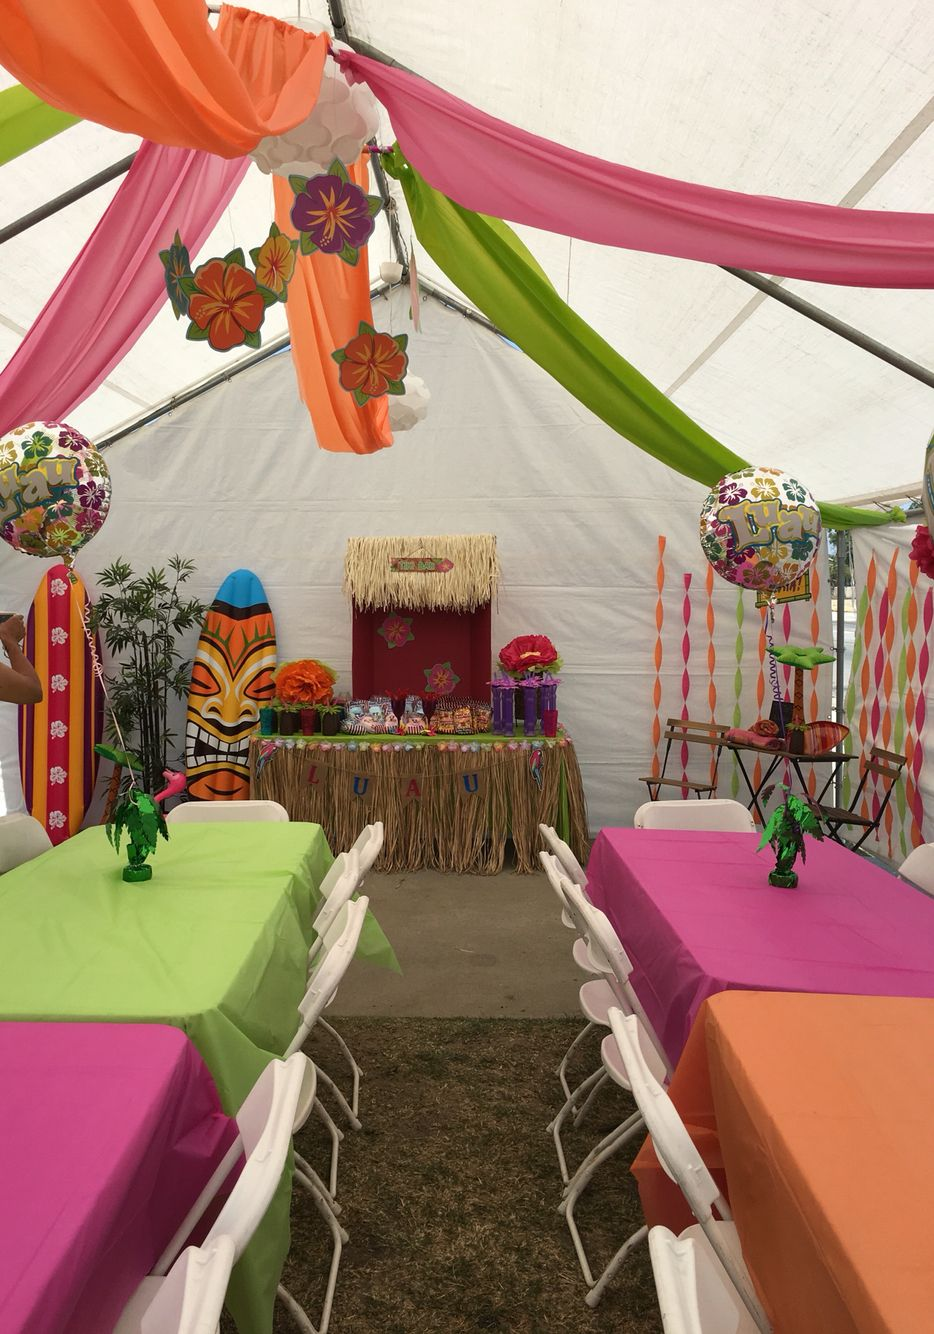 Diy Decorations For A Luau Theme Party Great Way To Decorate Your Outdoor Canopy Can Be Found At Local Supply Or You